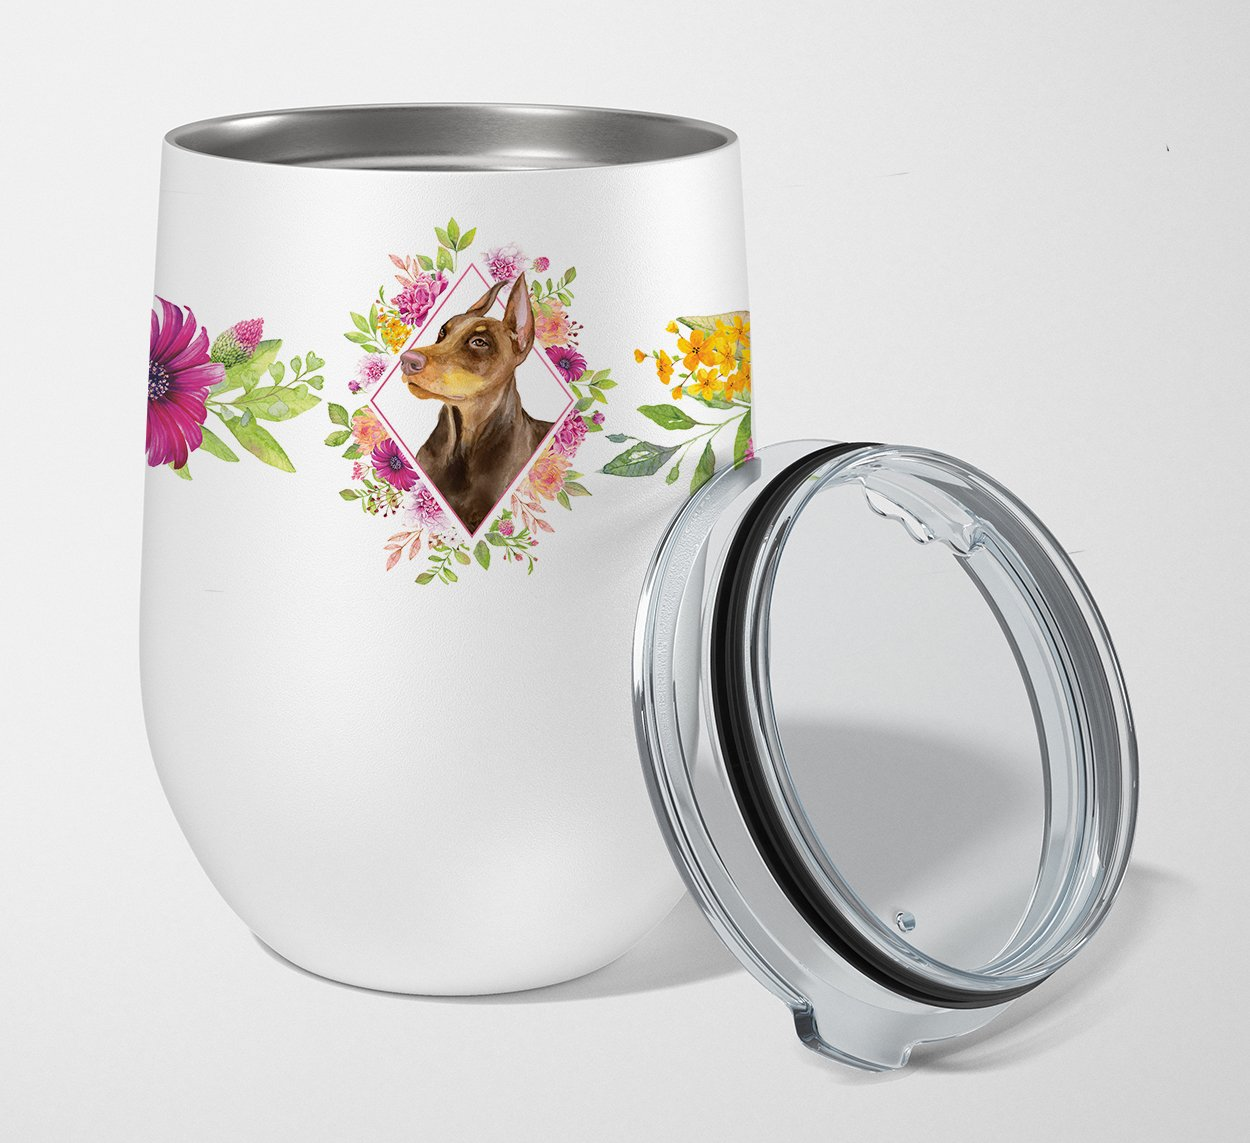 Doberman Pinscher Pink Flowers Stainless Steel 12 oz Stemless Wine Glass CK4138TBL12 by Caroline's Treasures